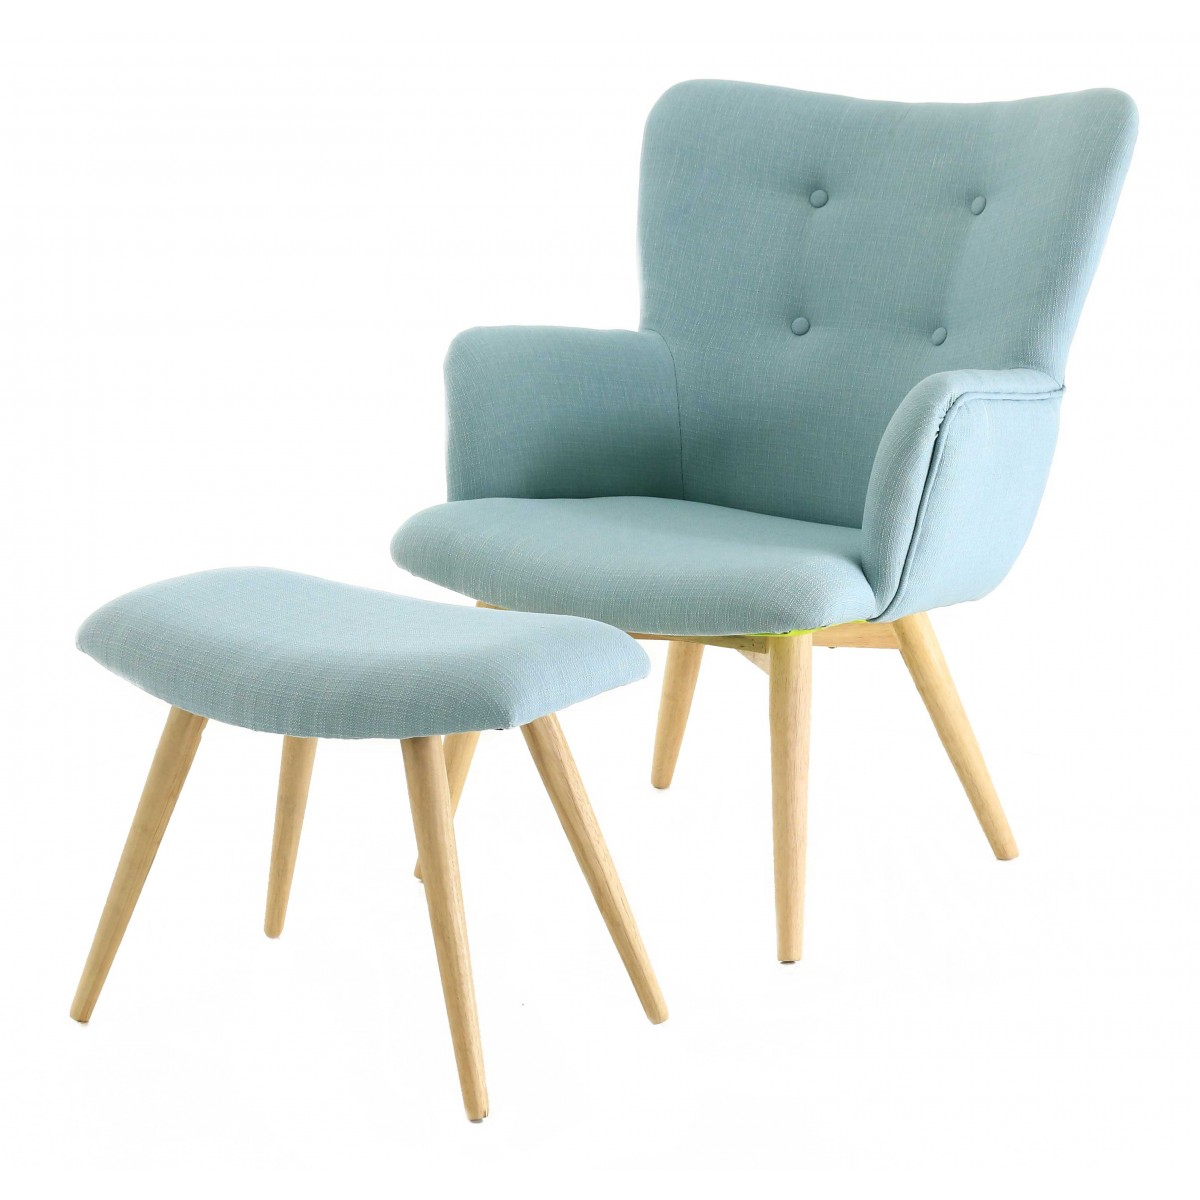 fauteuil repose pieds en polyester style scandinave bleu mooviin. Black Bedroom Furniture Sets. Home Design Ideas